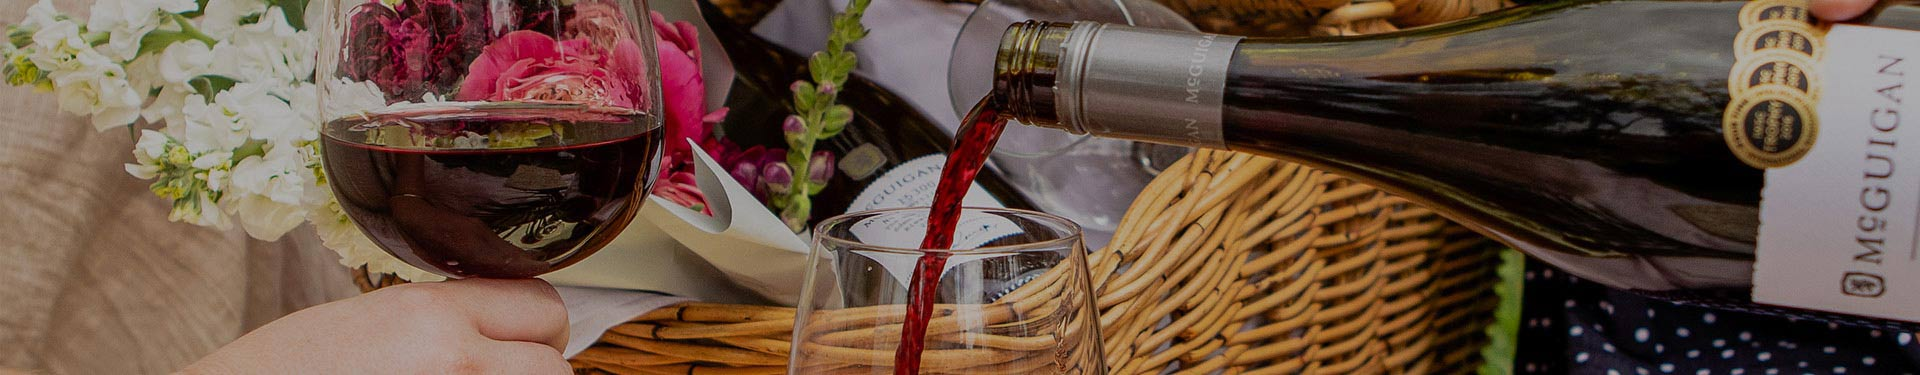 McGuigan red wine being poured in a picnic